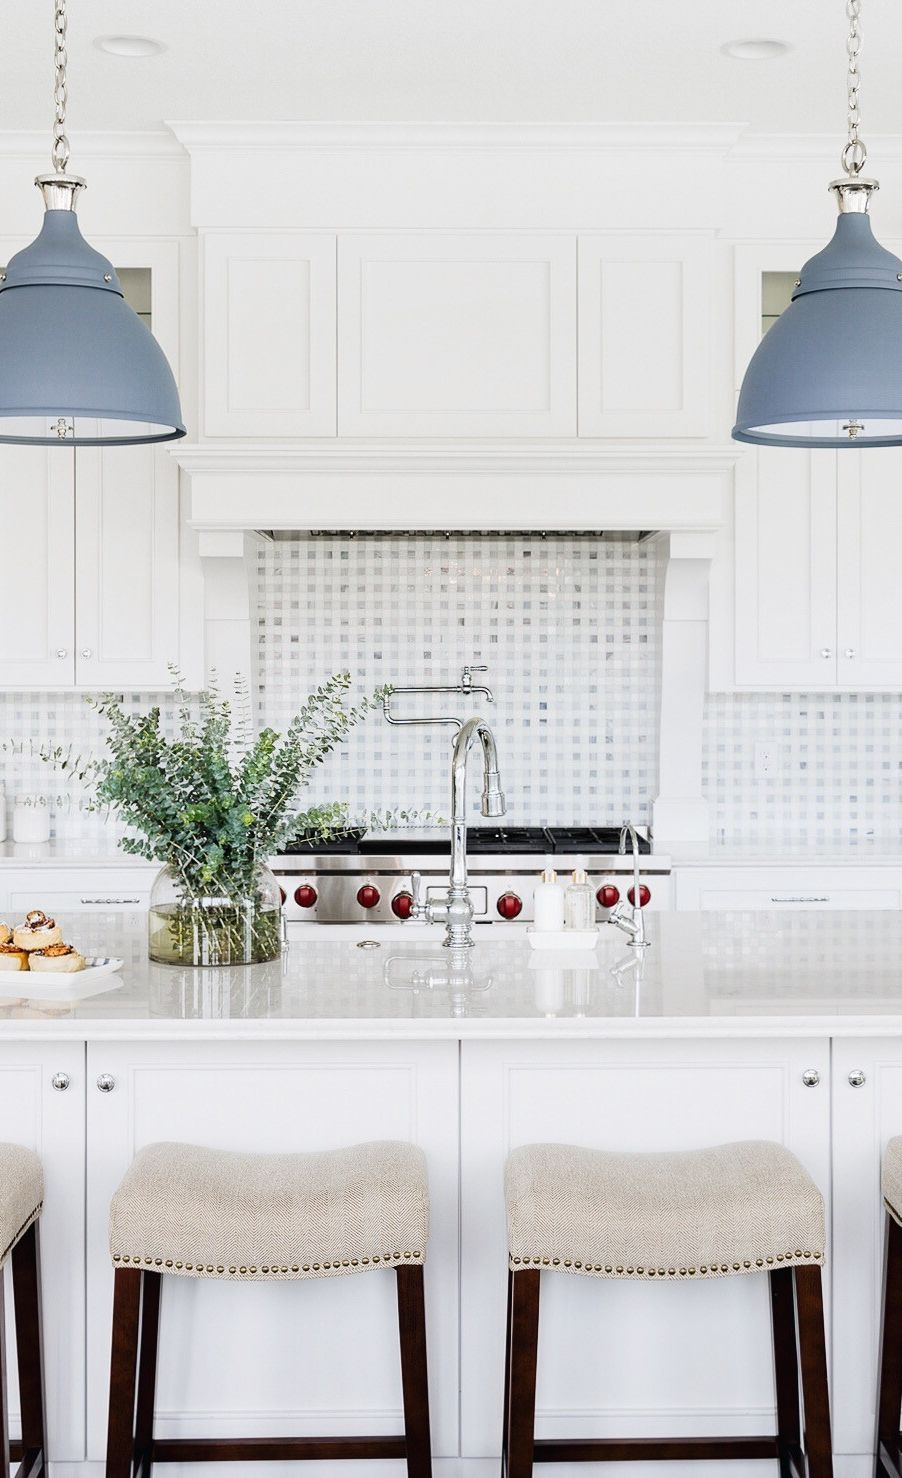 Cambria Swanbridge countertops in a white kitchen with matte blue light fixtures